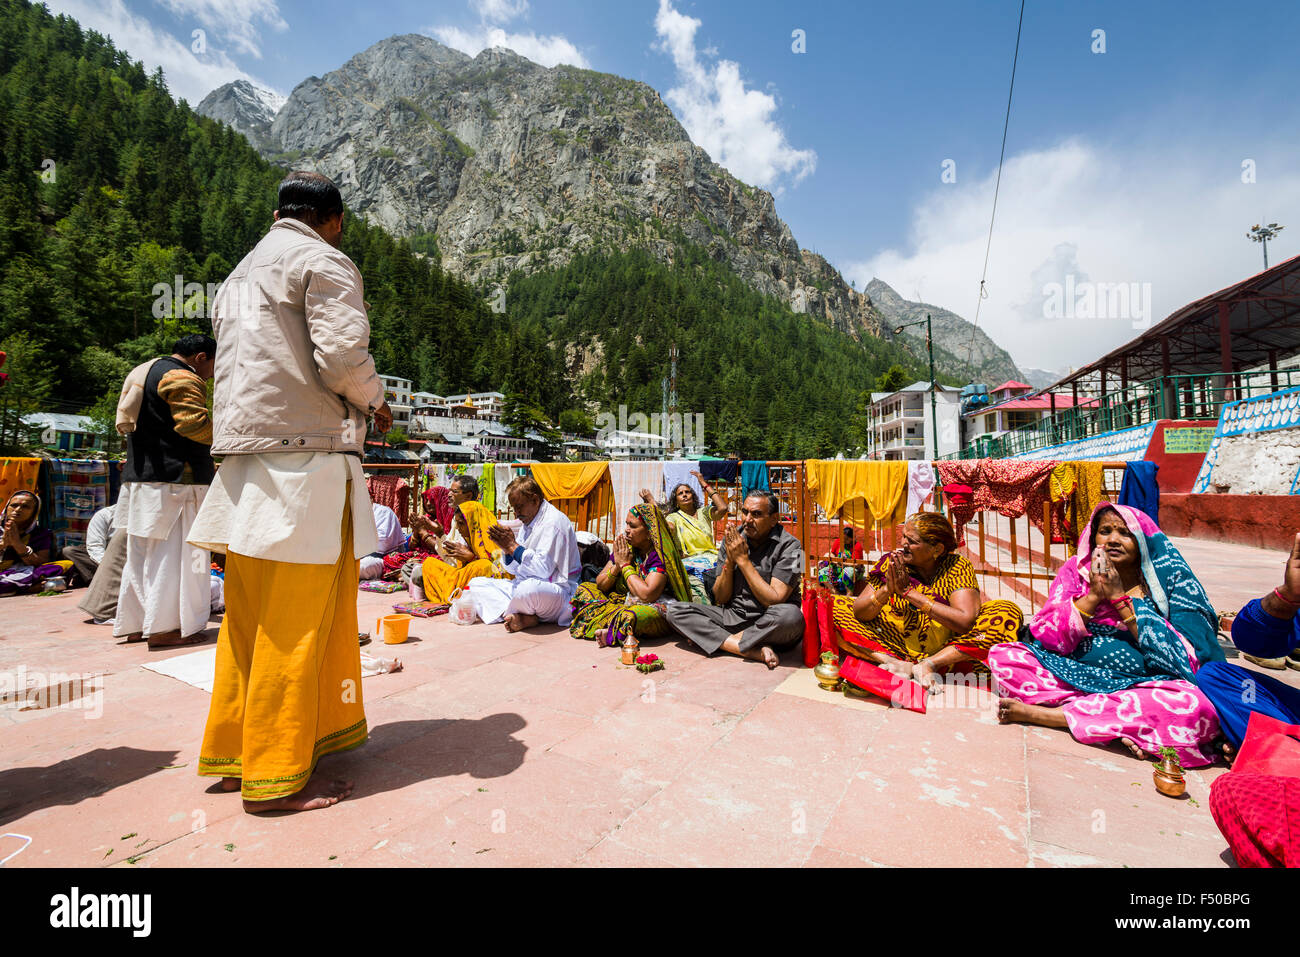 A group of pilgrims at the banks of the river Ganges is performing Ganga Pooja, a religeous ceremony - Stock Image